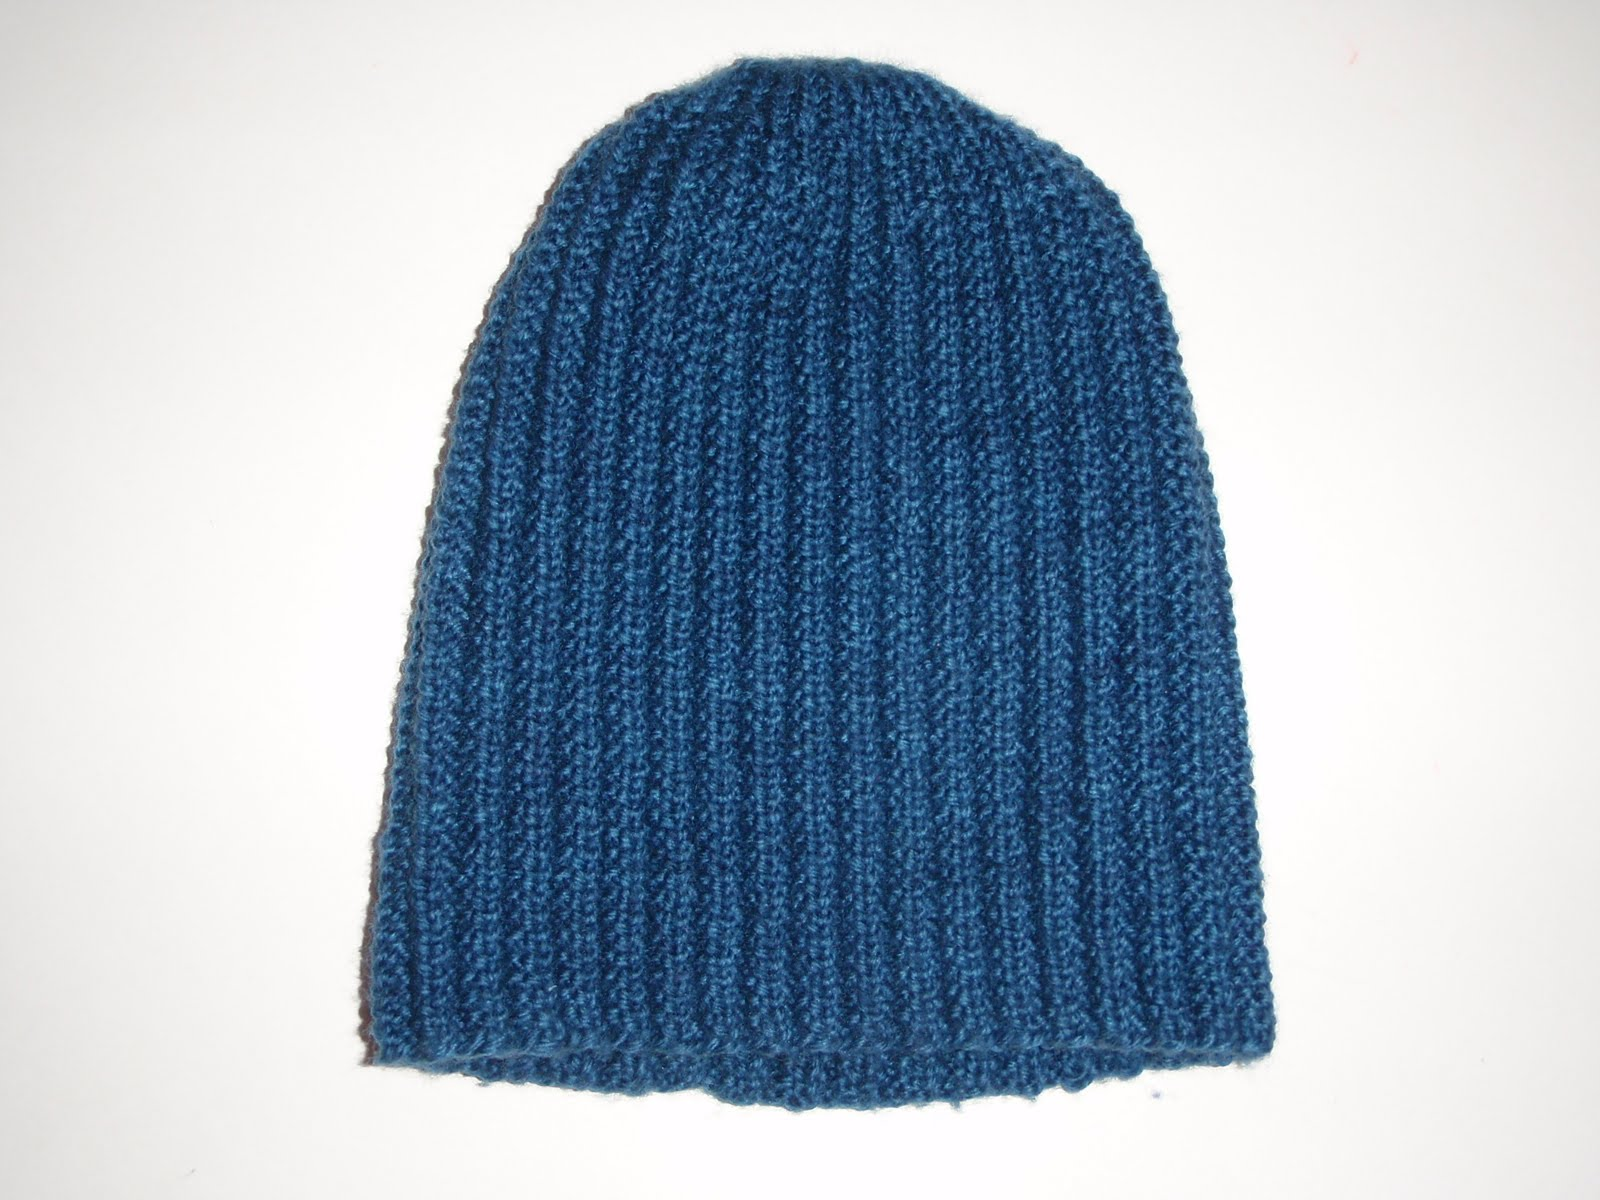 If the knit fits...: FO Friday- Mistake rib hat